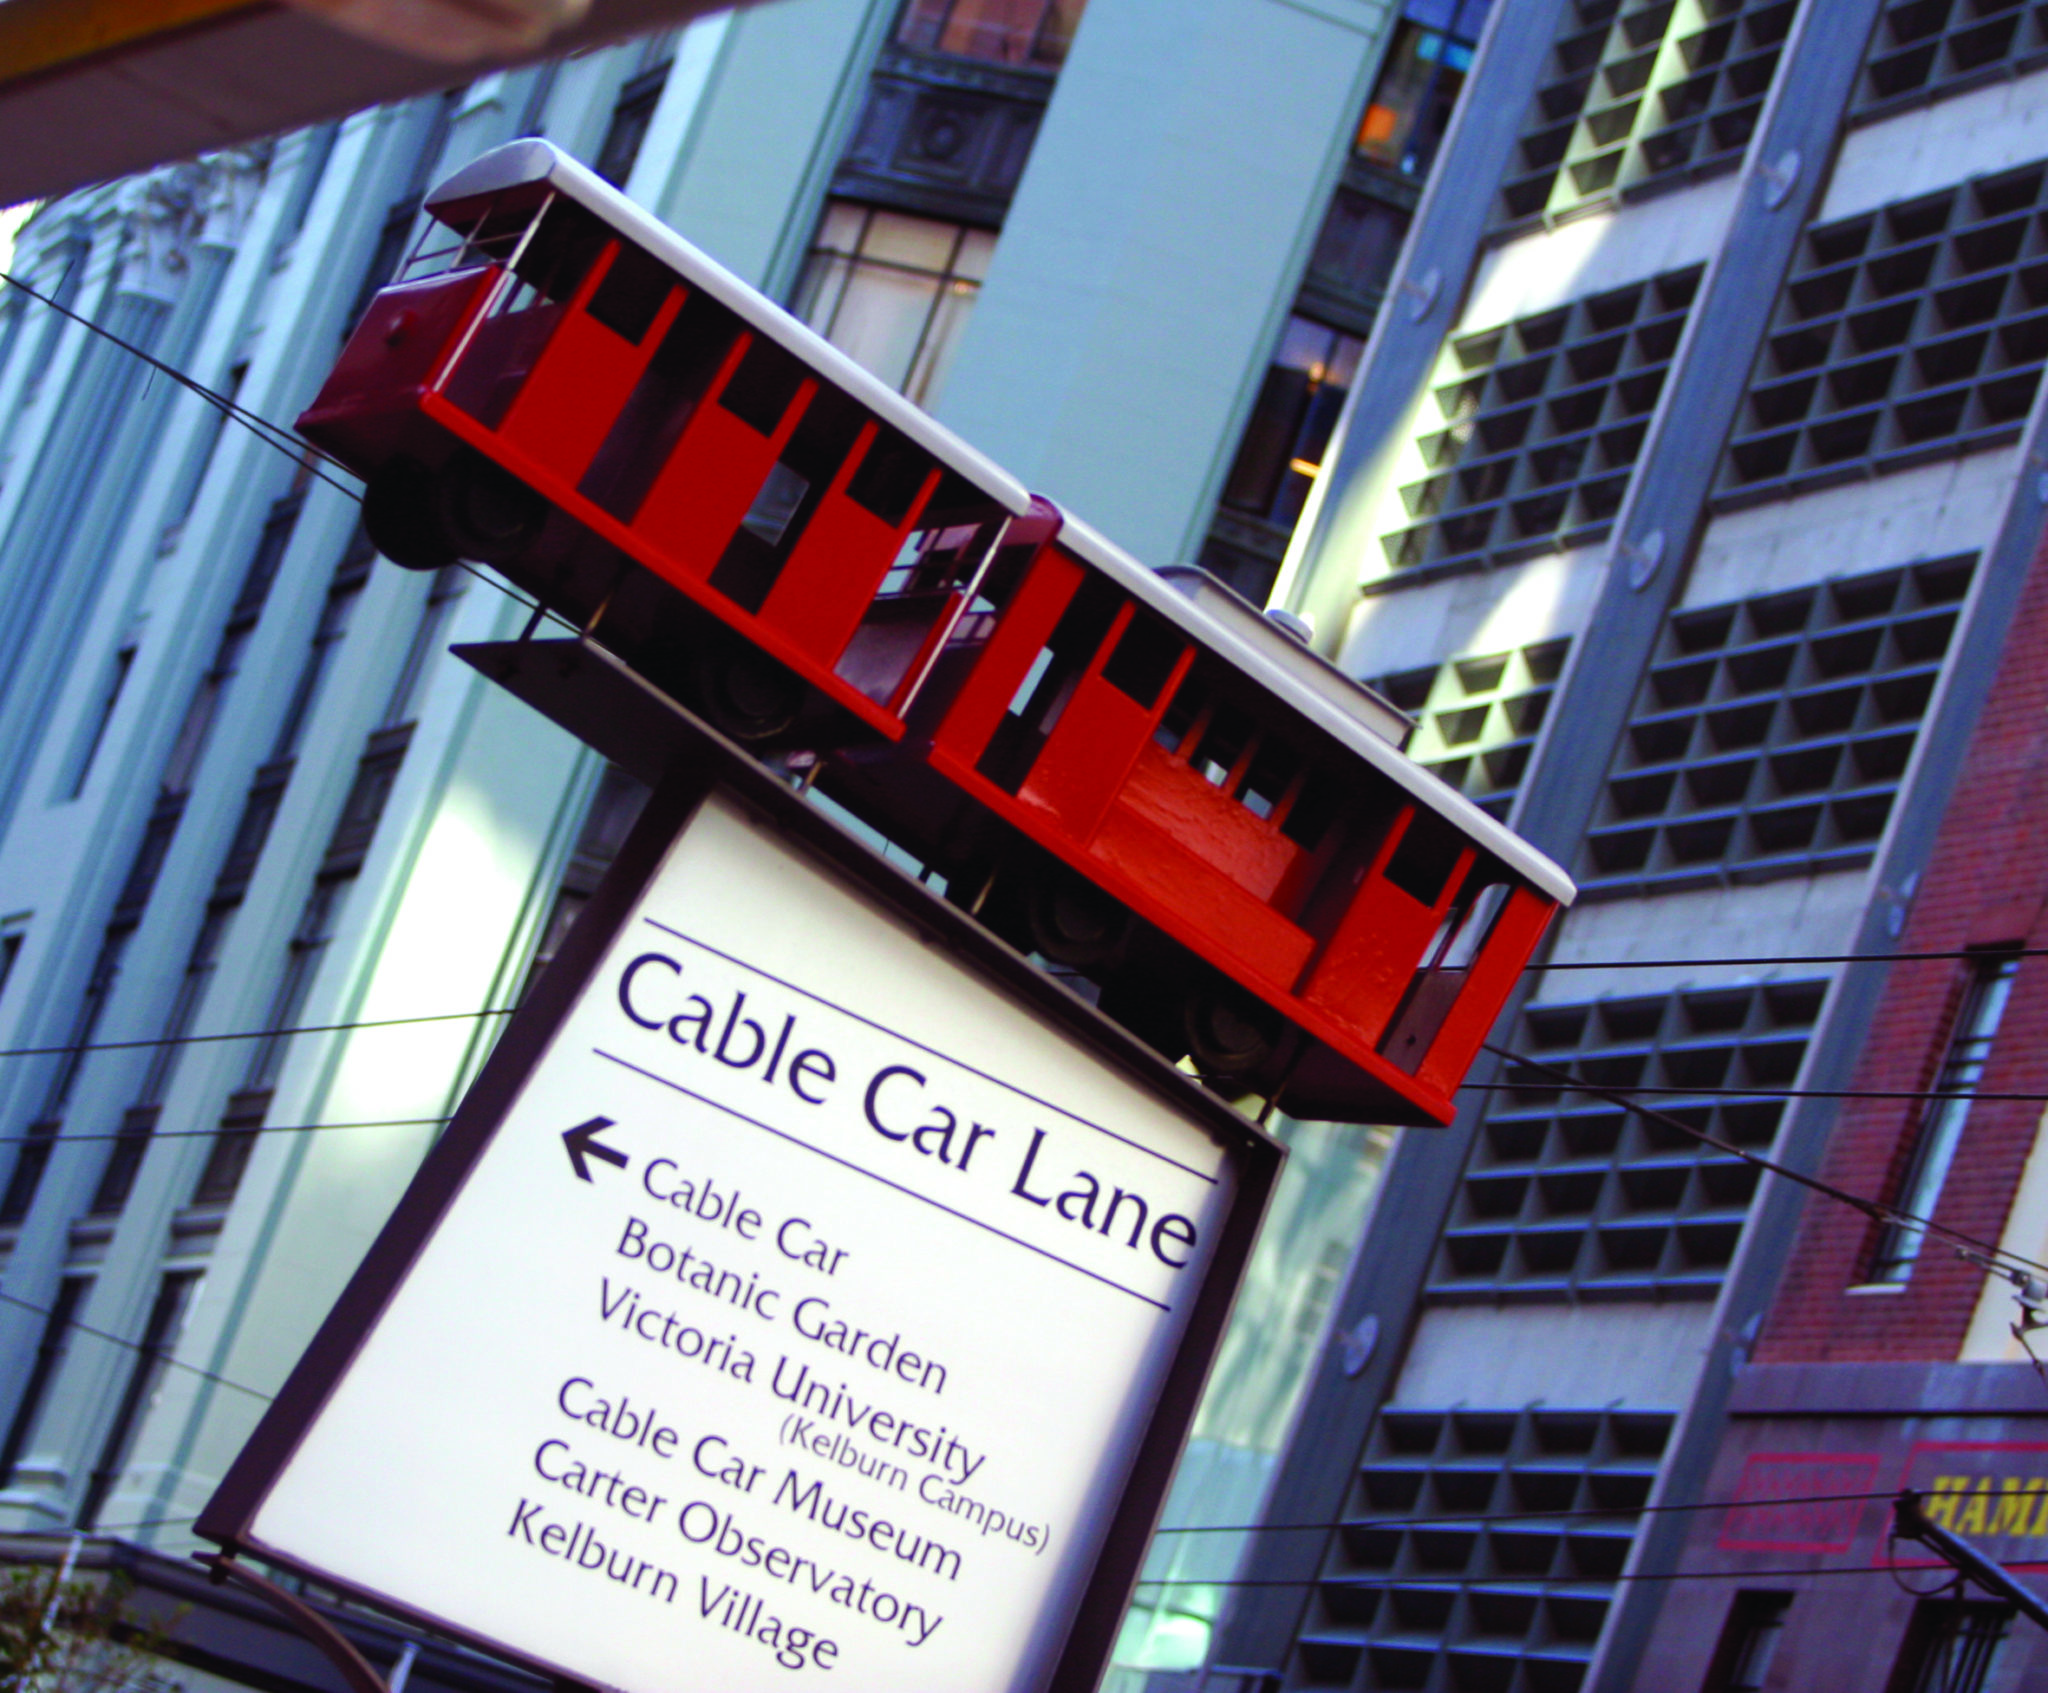 Cable Car Lane Wellington